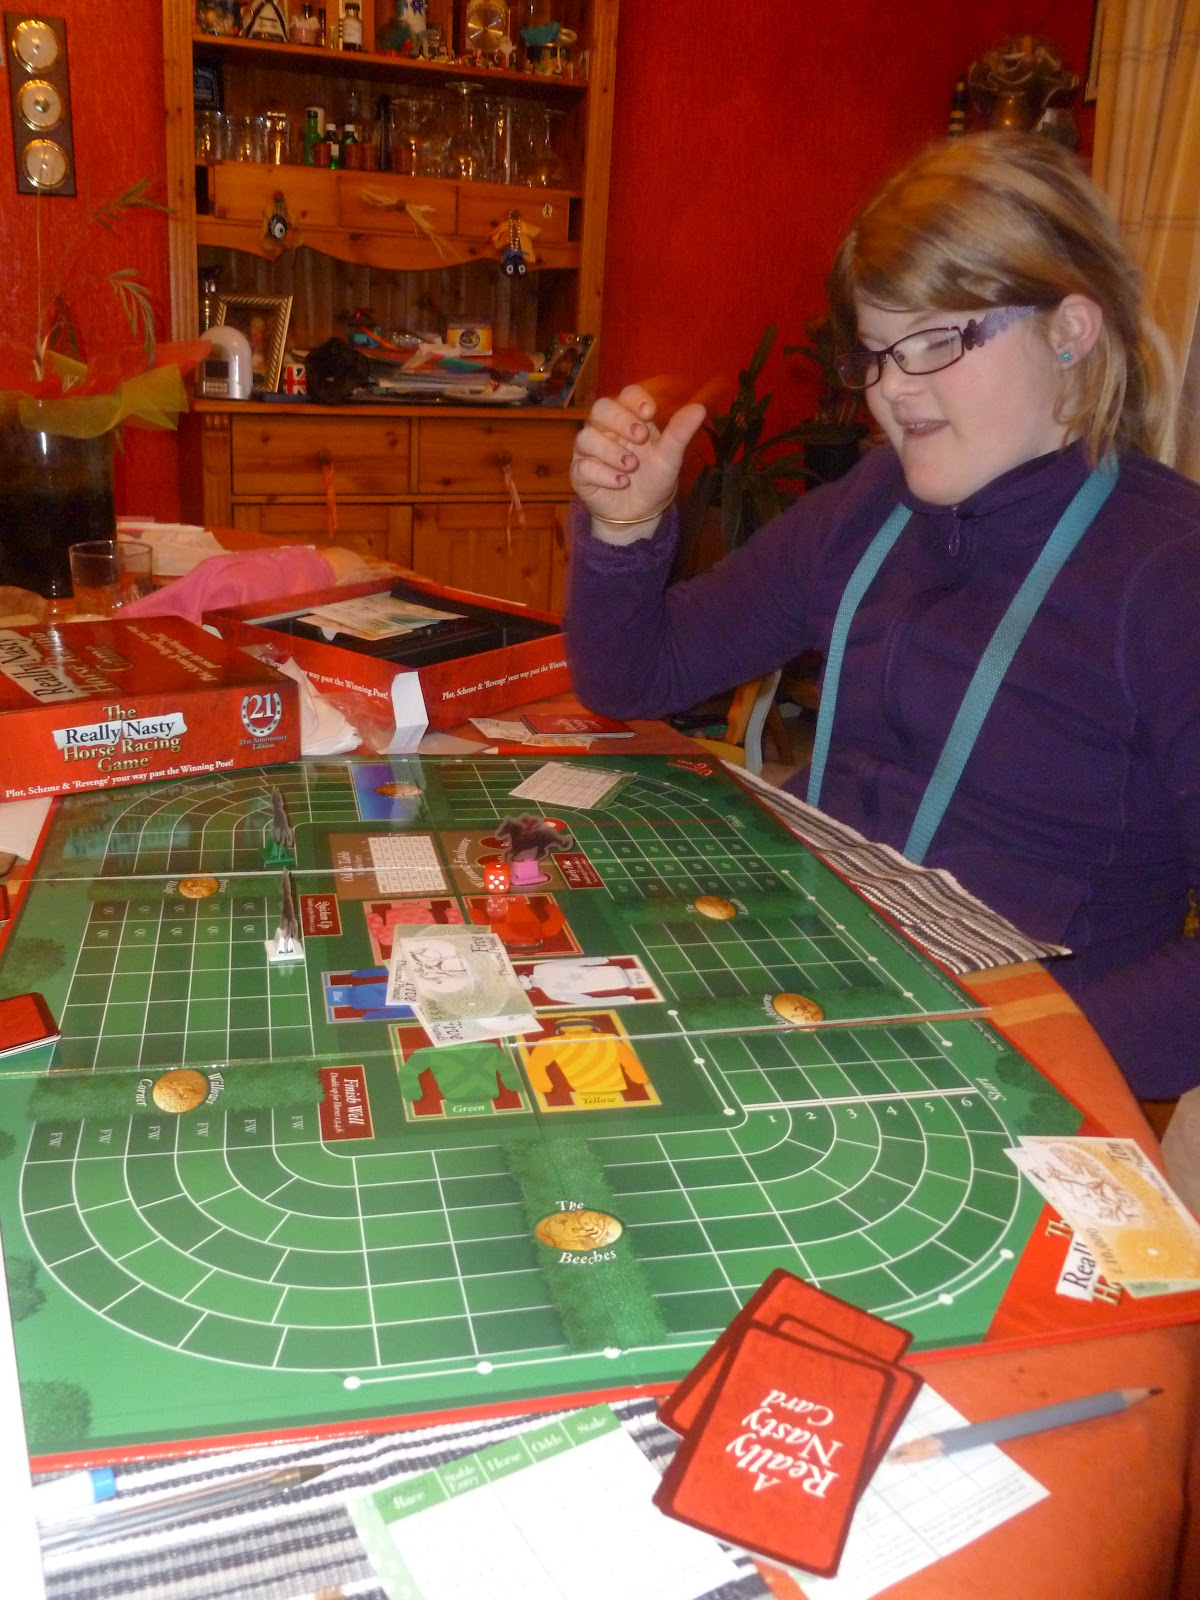 Madhouse Family Reviews The Really Nasty Horse Racing Game Review